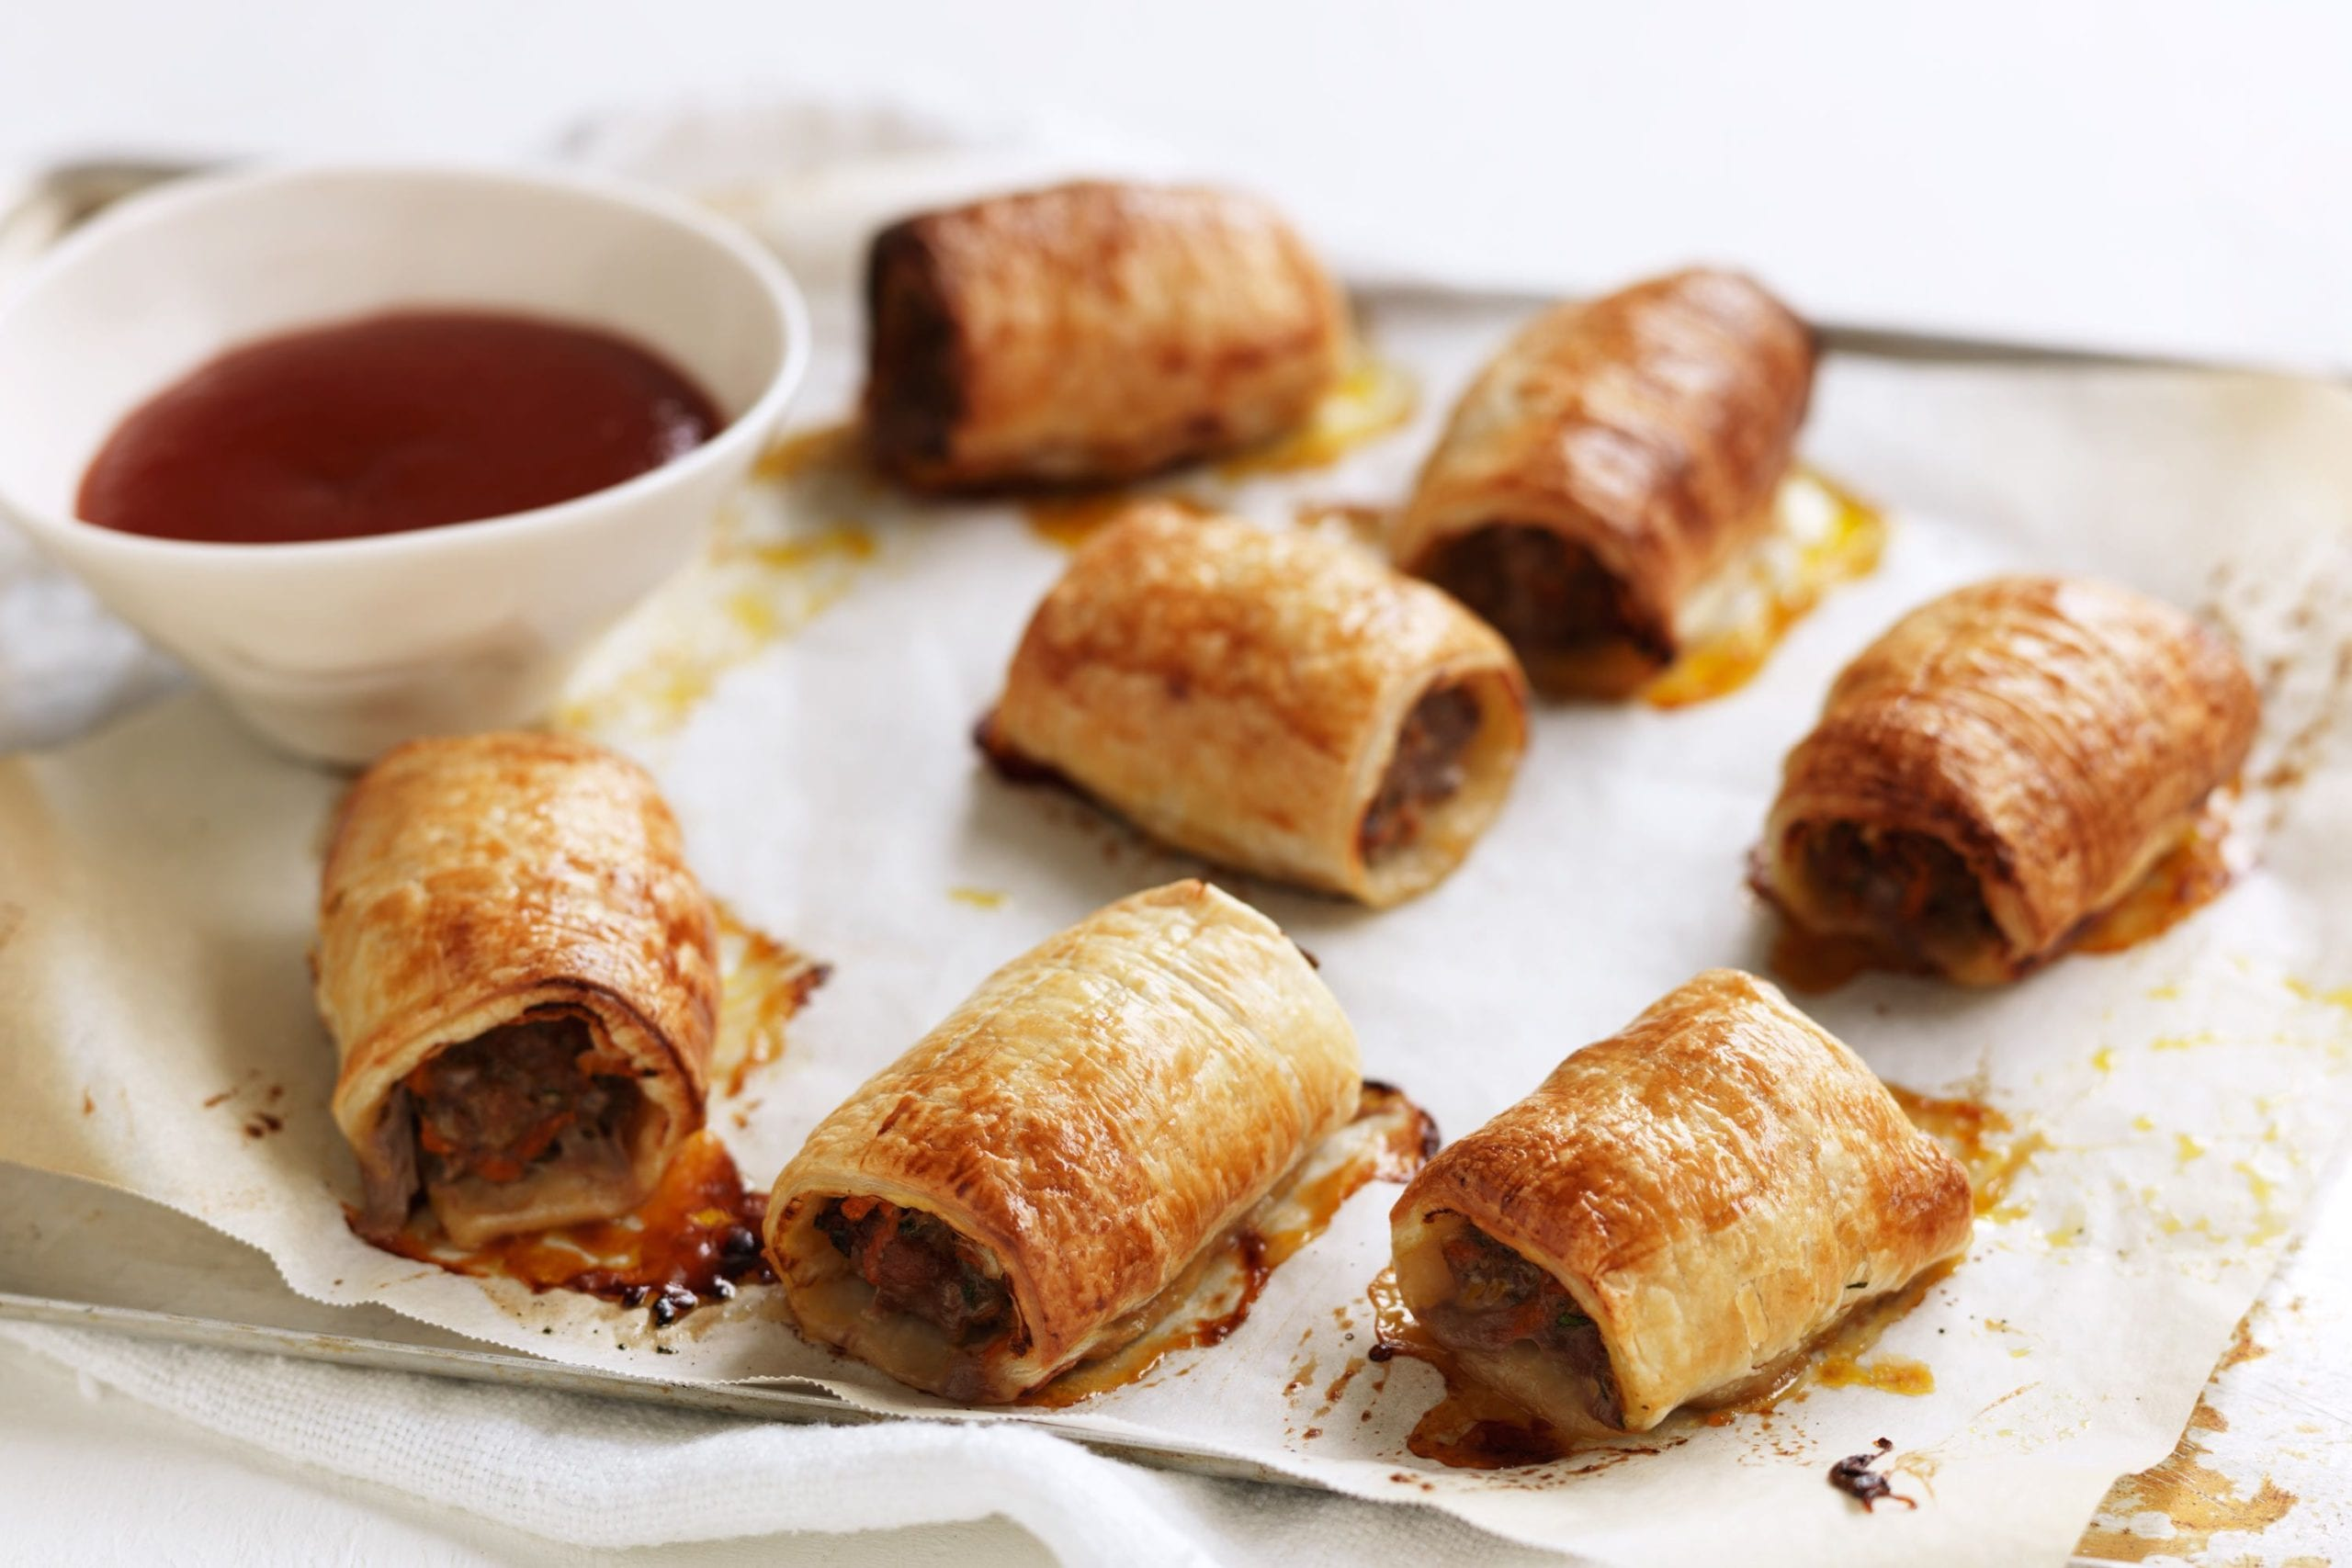 How to make easy sausage rolls at home